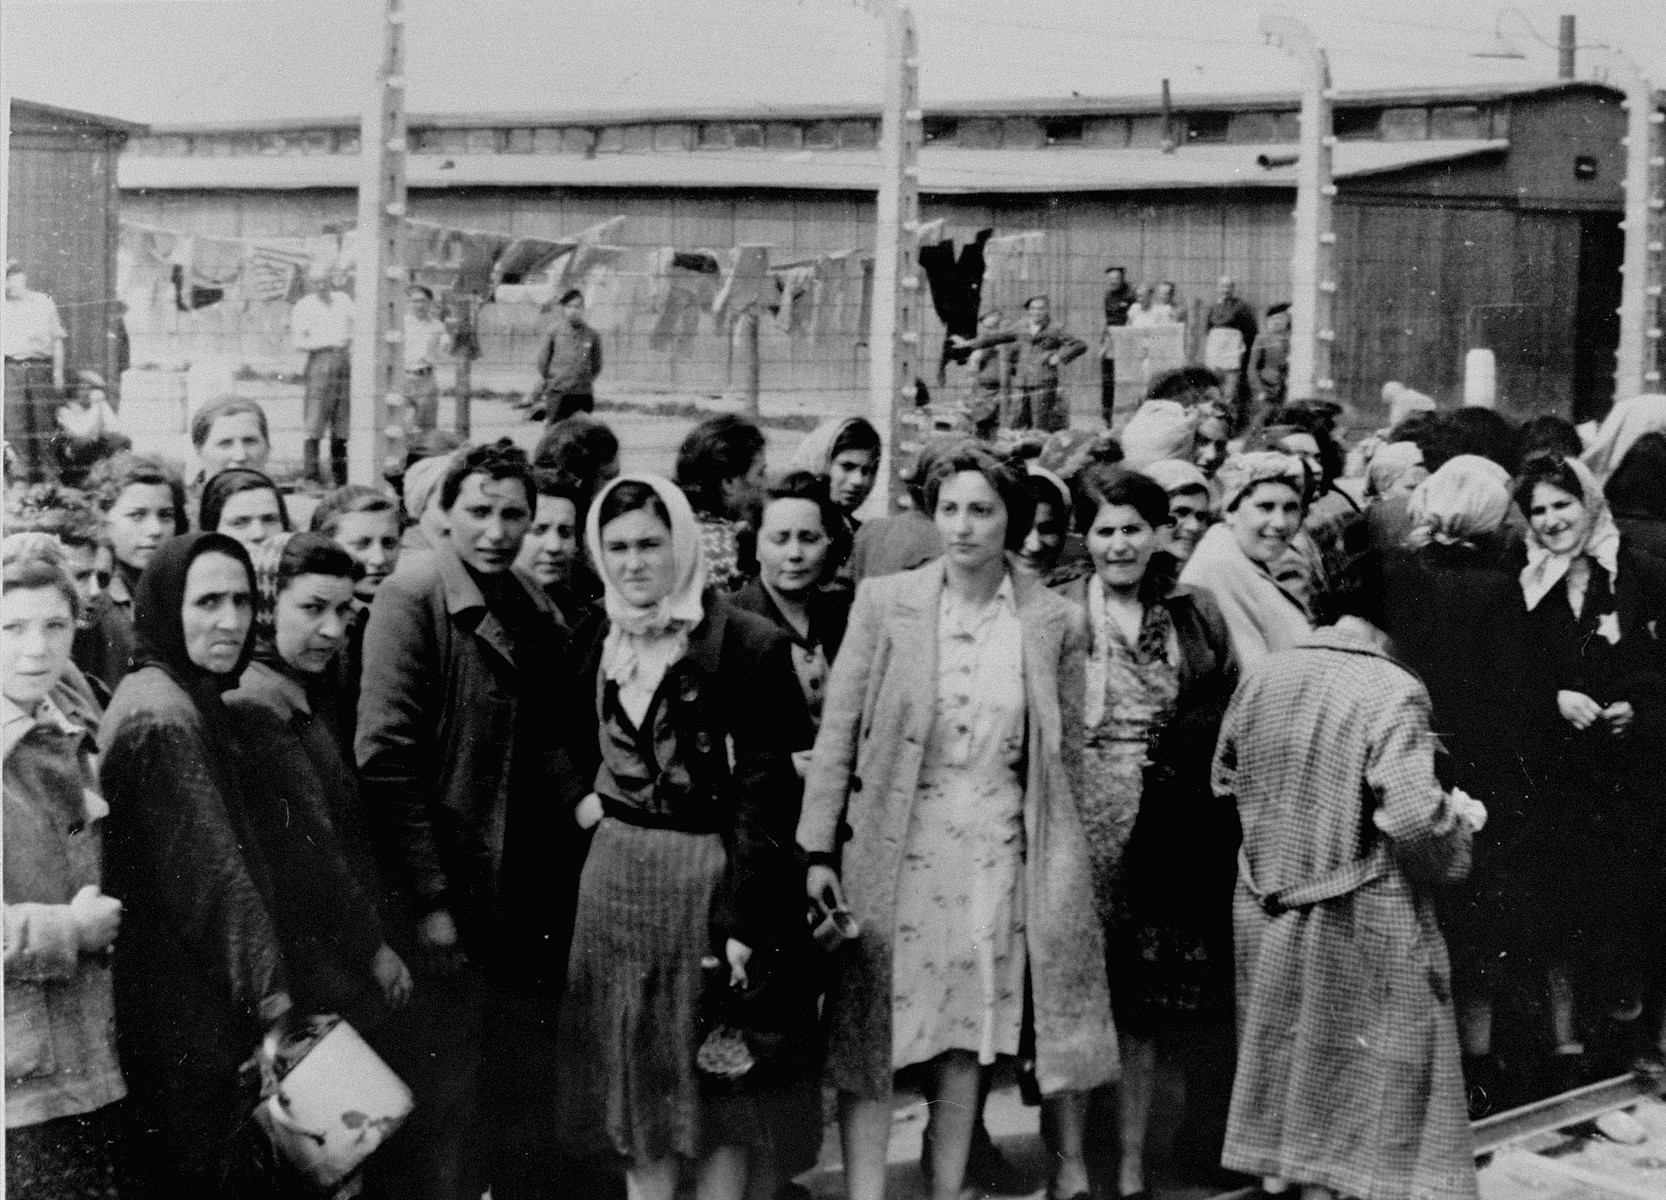 Jewish women from Subcarpathian Rus who have been selected for forced labor at Auschwitz-Birkenau, wait to be taken to another section of the camp.   Behind the fence is block BIId where 20,000 men were imprisoned.   Among those pictured are Gizi Krousz Kauf of Szeged, Rozsi Egri Swartz, Zseni Stern of Bodrogkeresztur, Ester Erzsebet Egri Deutsch (Rozsi's niece) of Bodrogkeresztur, Freda Egri Salomon (Ester's sister), Aranka Stern (Zseni's niece) and Etu Szumet of Bodrogkeresztur.